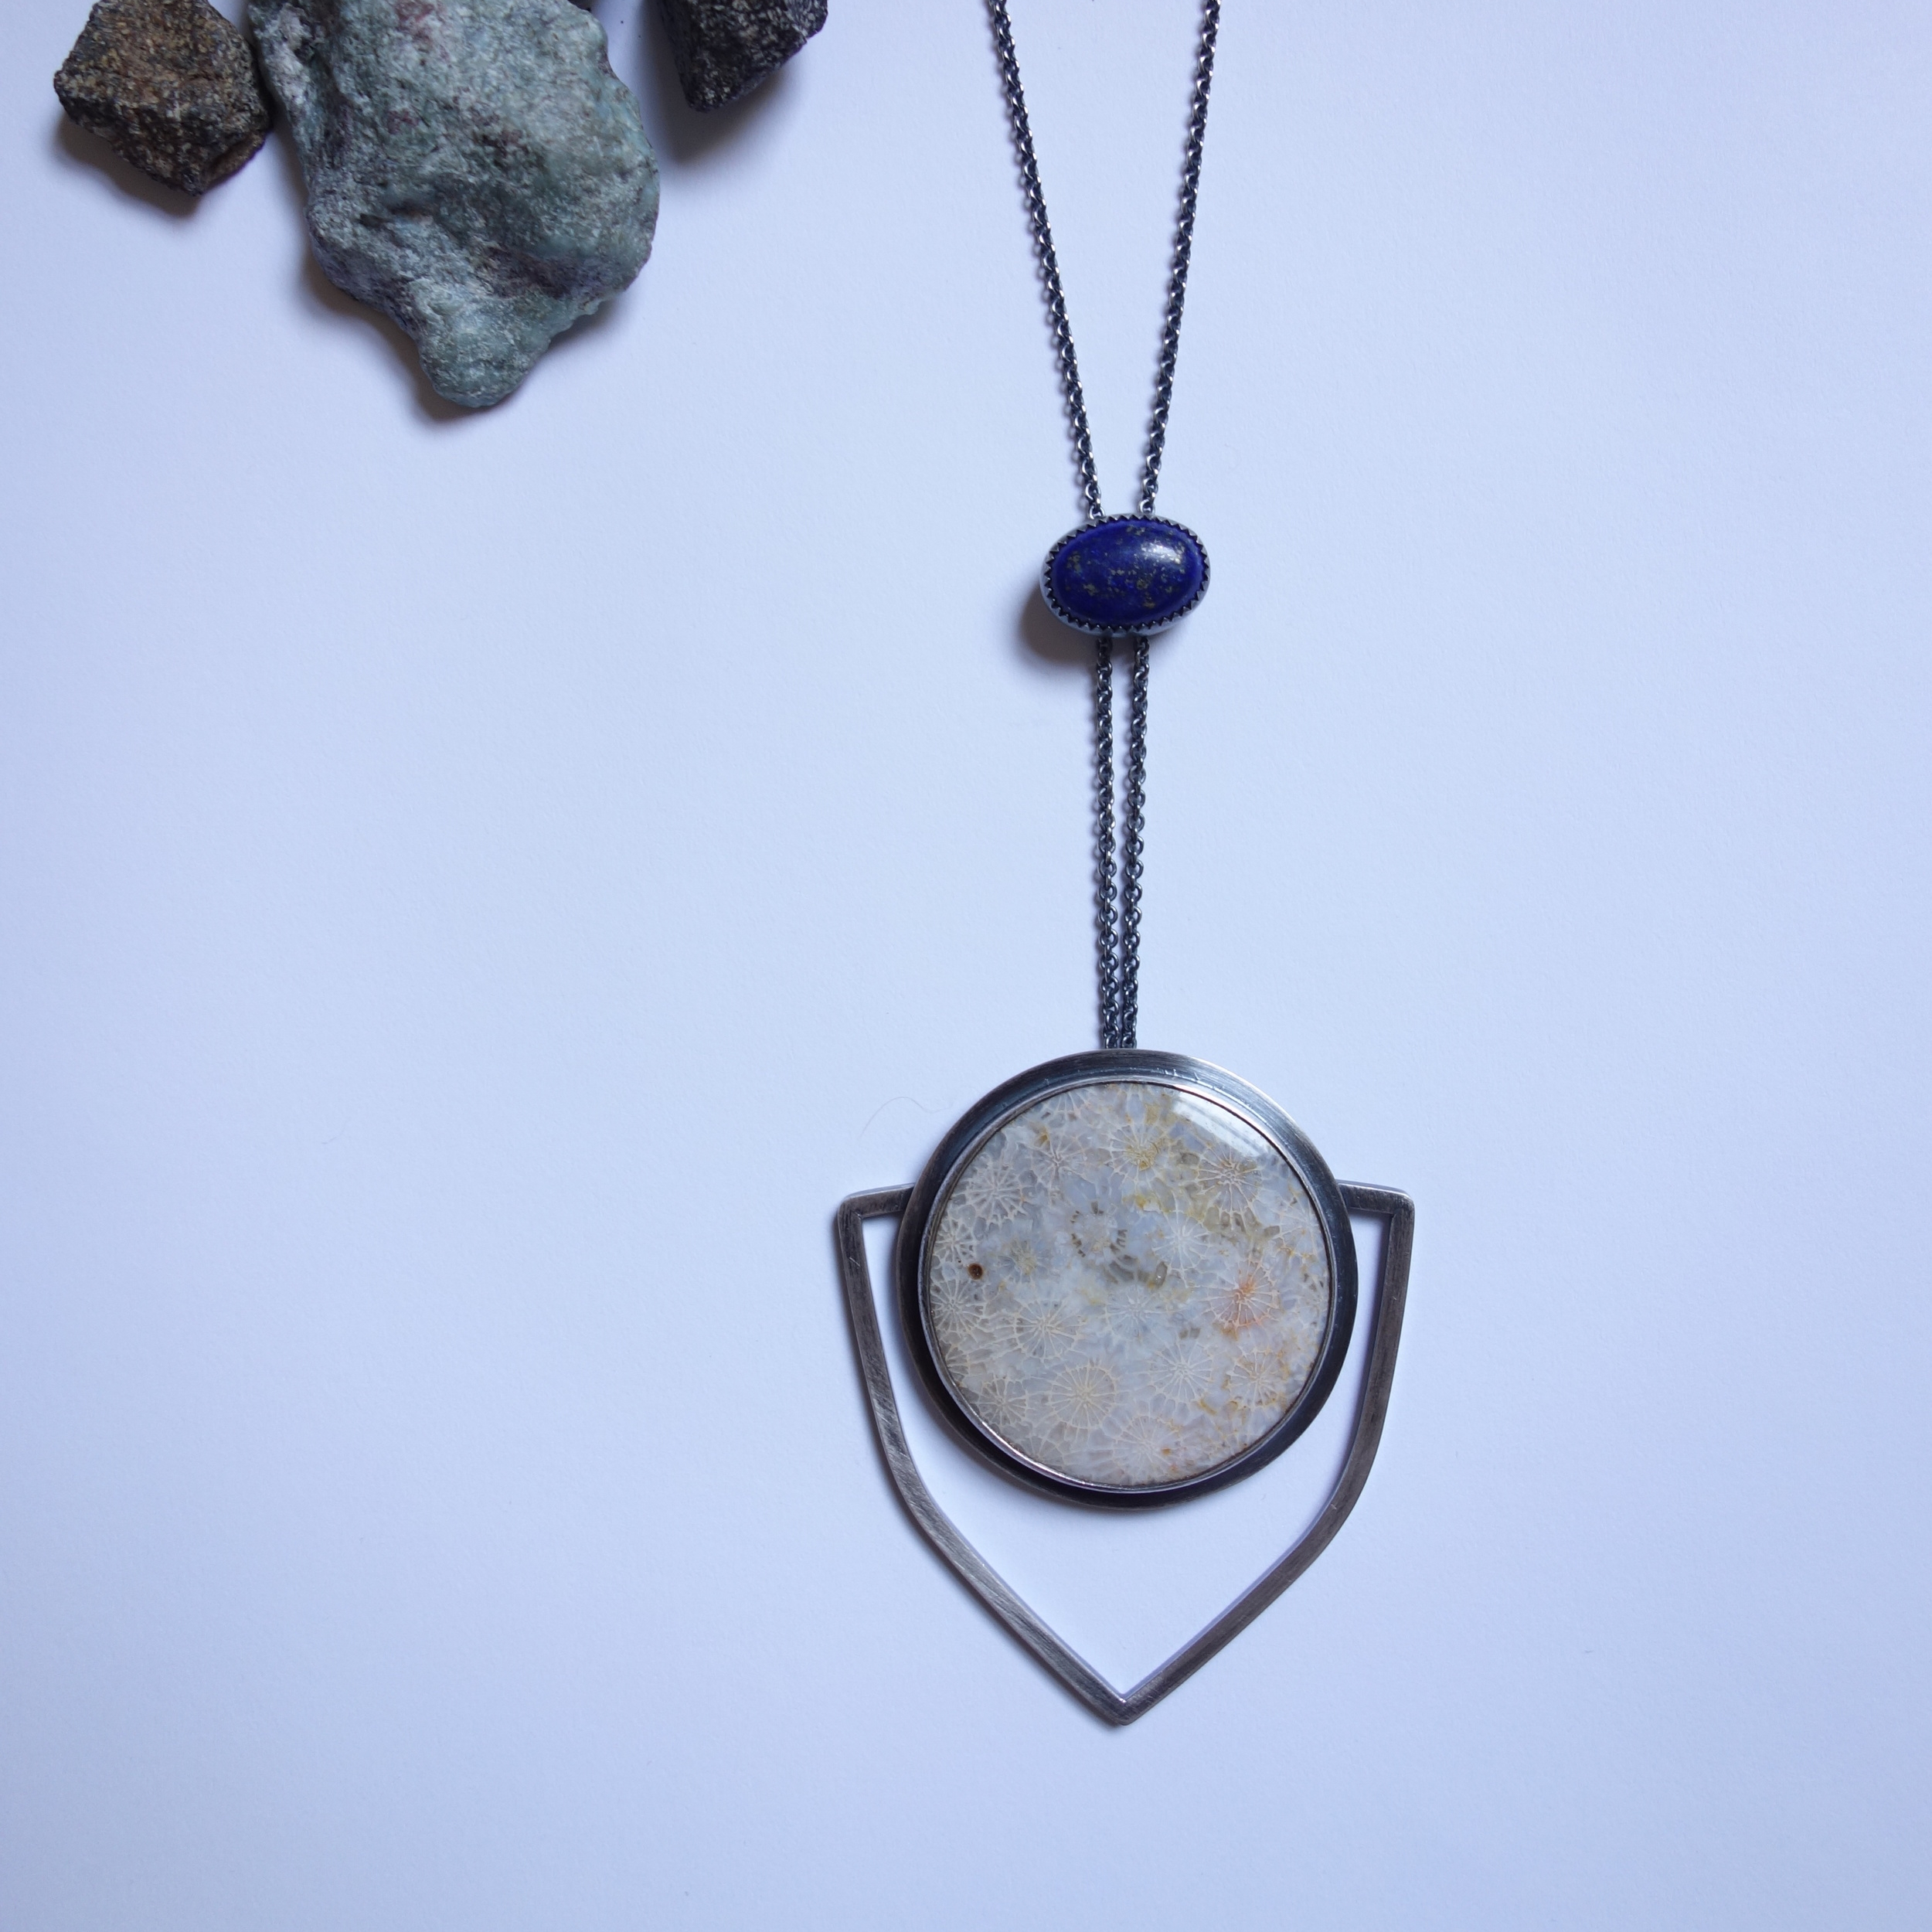 Fossilized Coral and Lapis Necklace - Mertimadekc.com